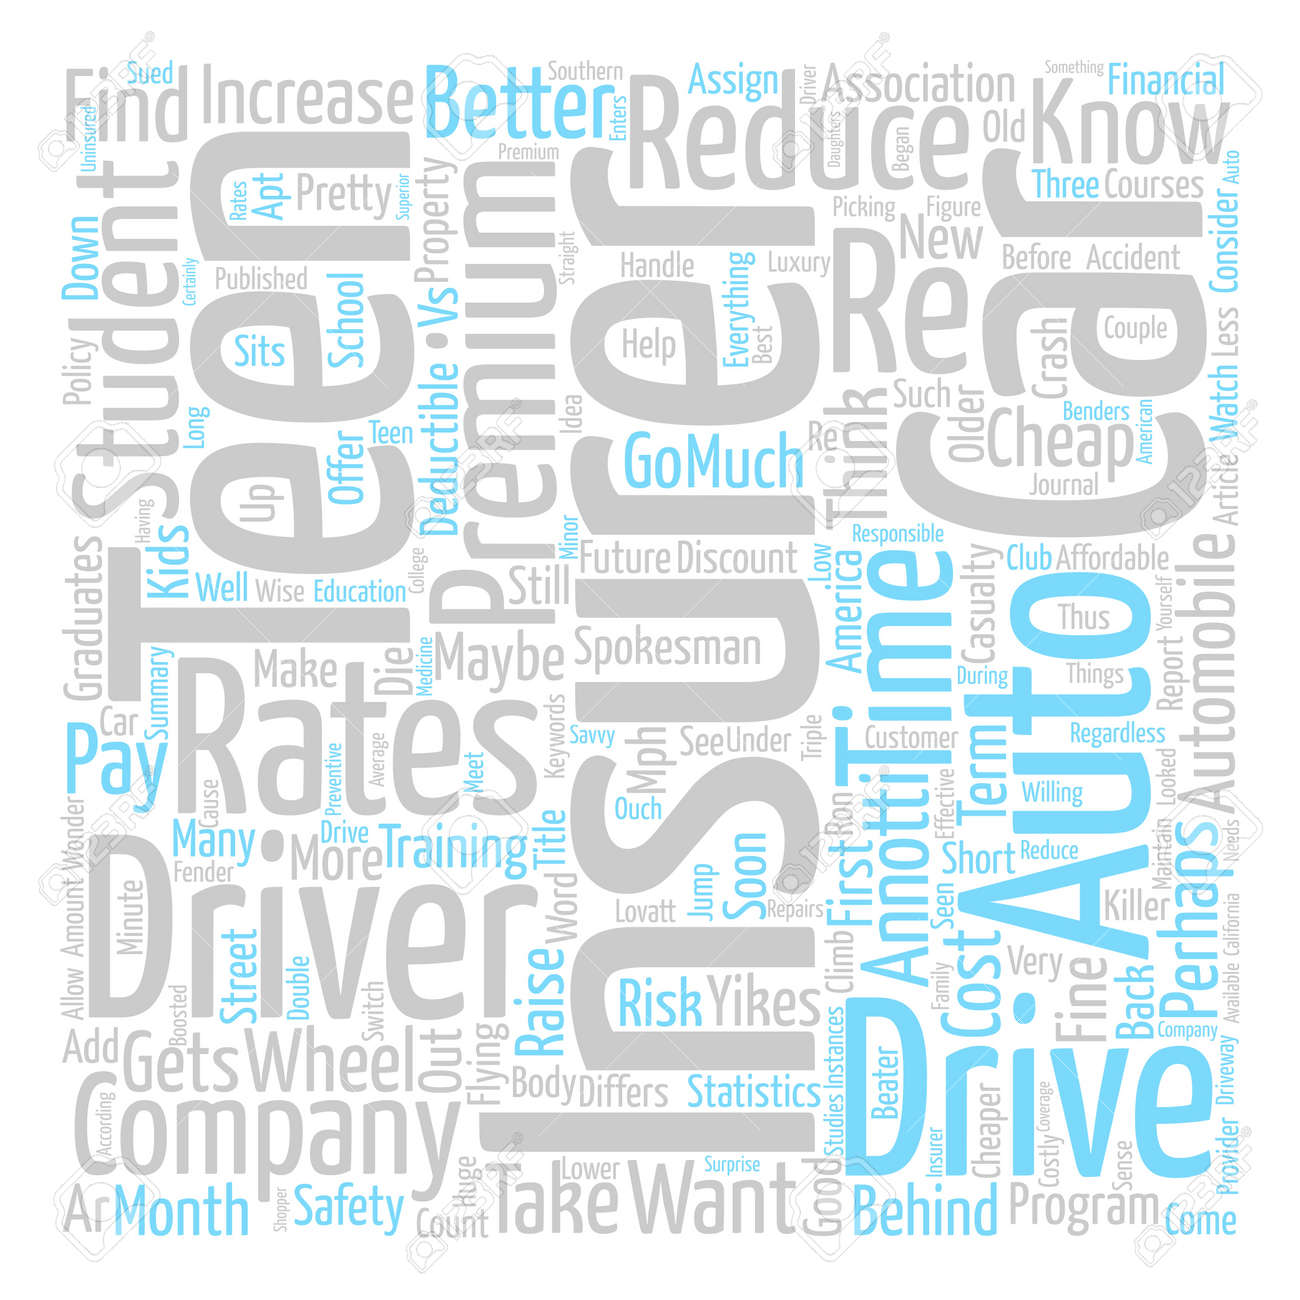 Cheap Auto Insurance >> Cheap Auto Insurance For Your Teen Or Maybe Not Text Background